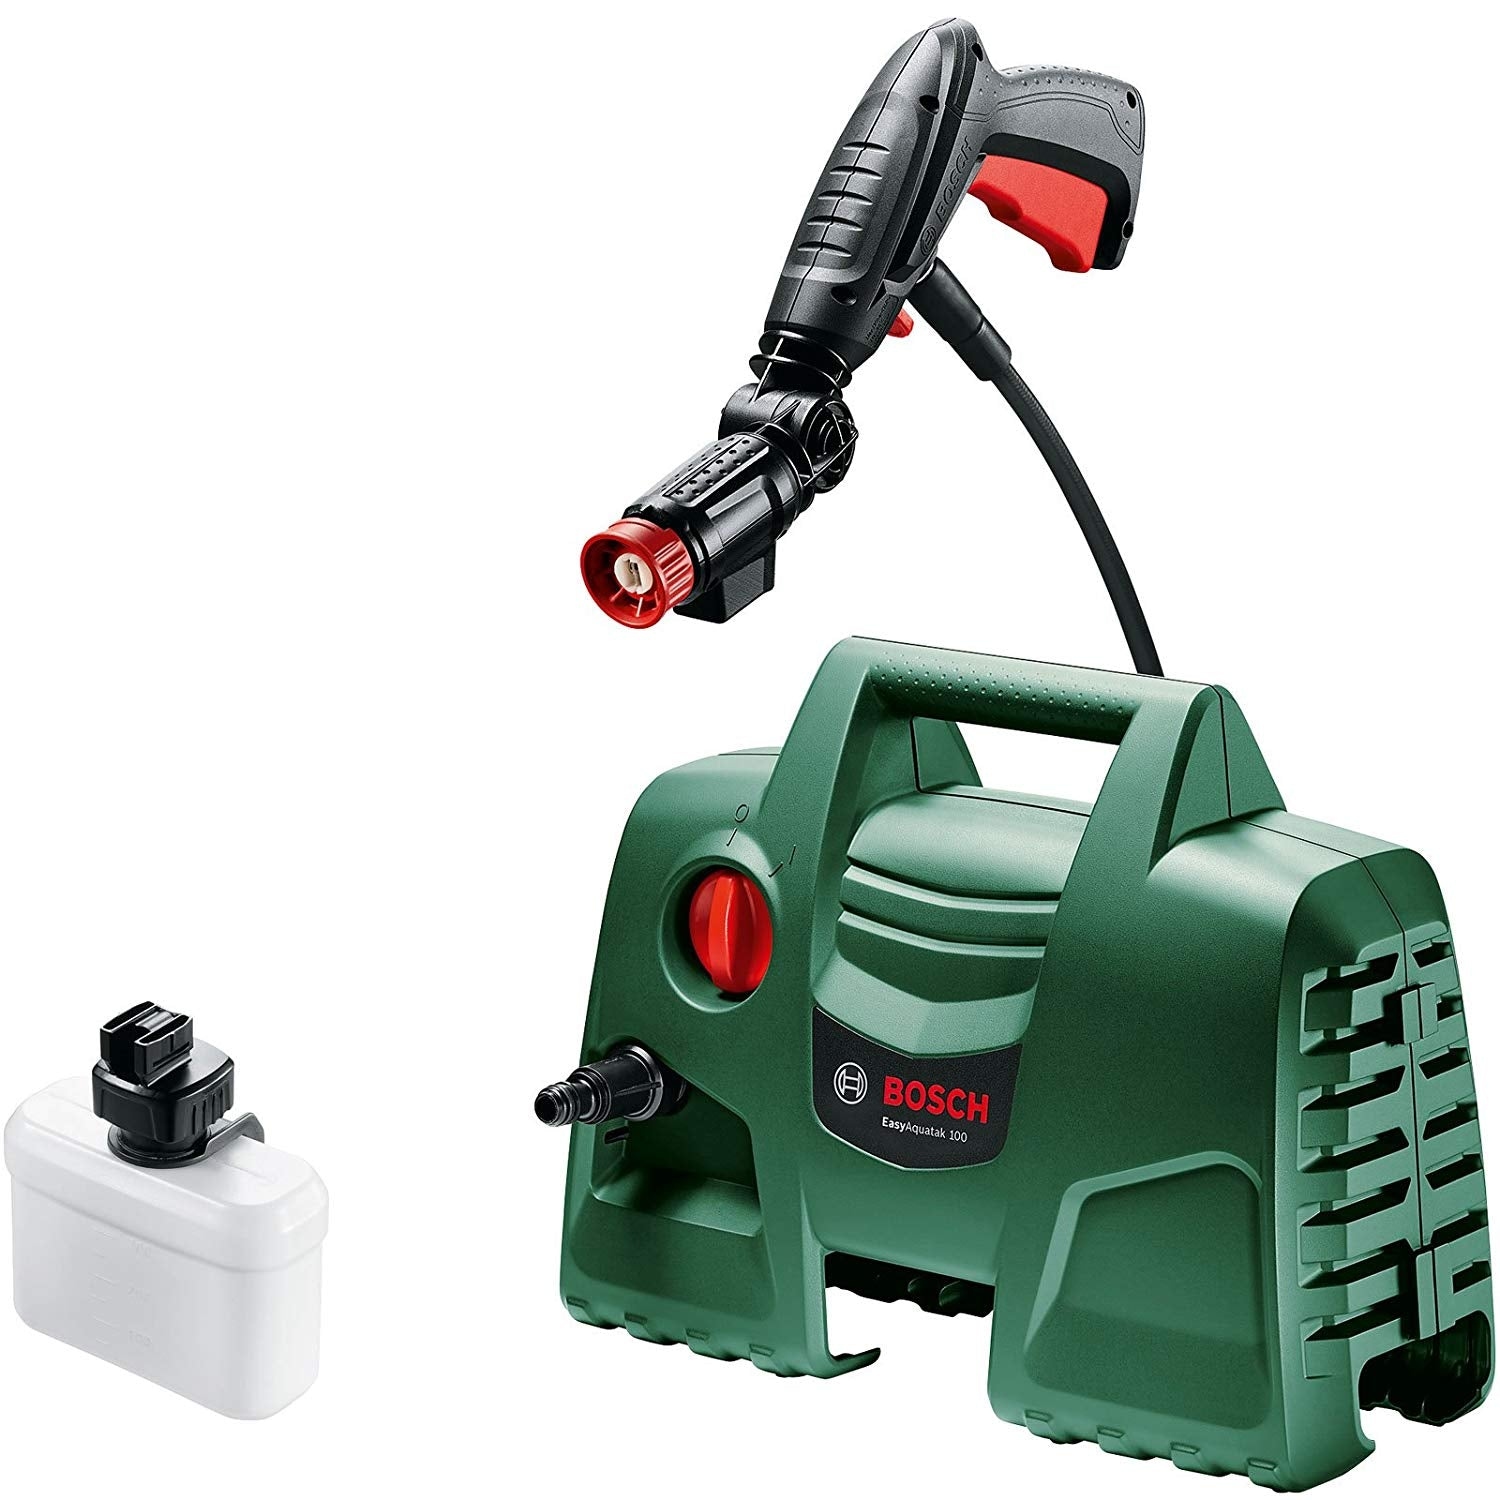 Bosch Easy Aquatak 100 Pressure Washer